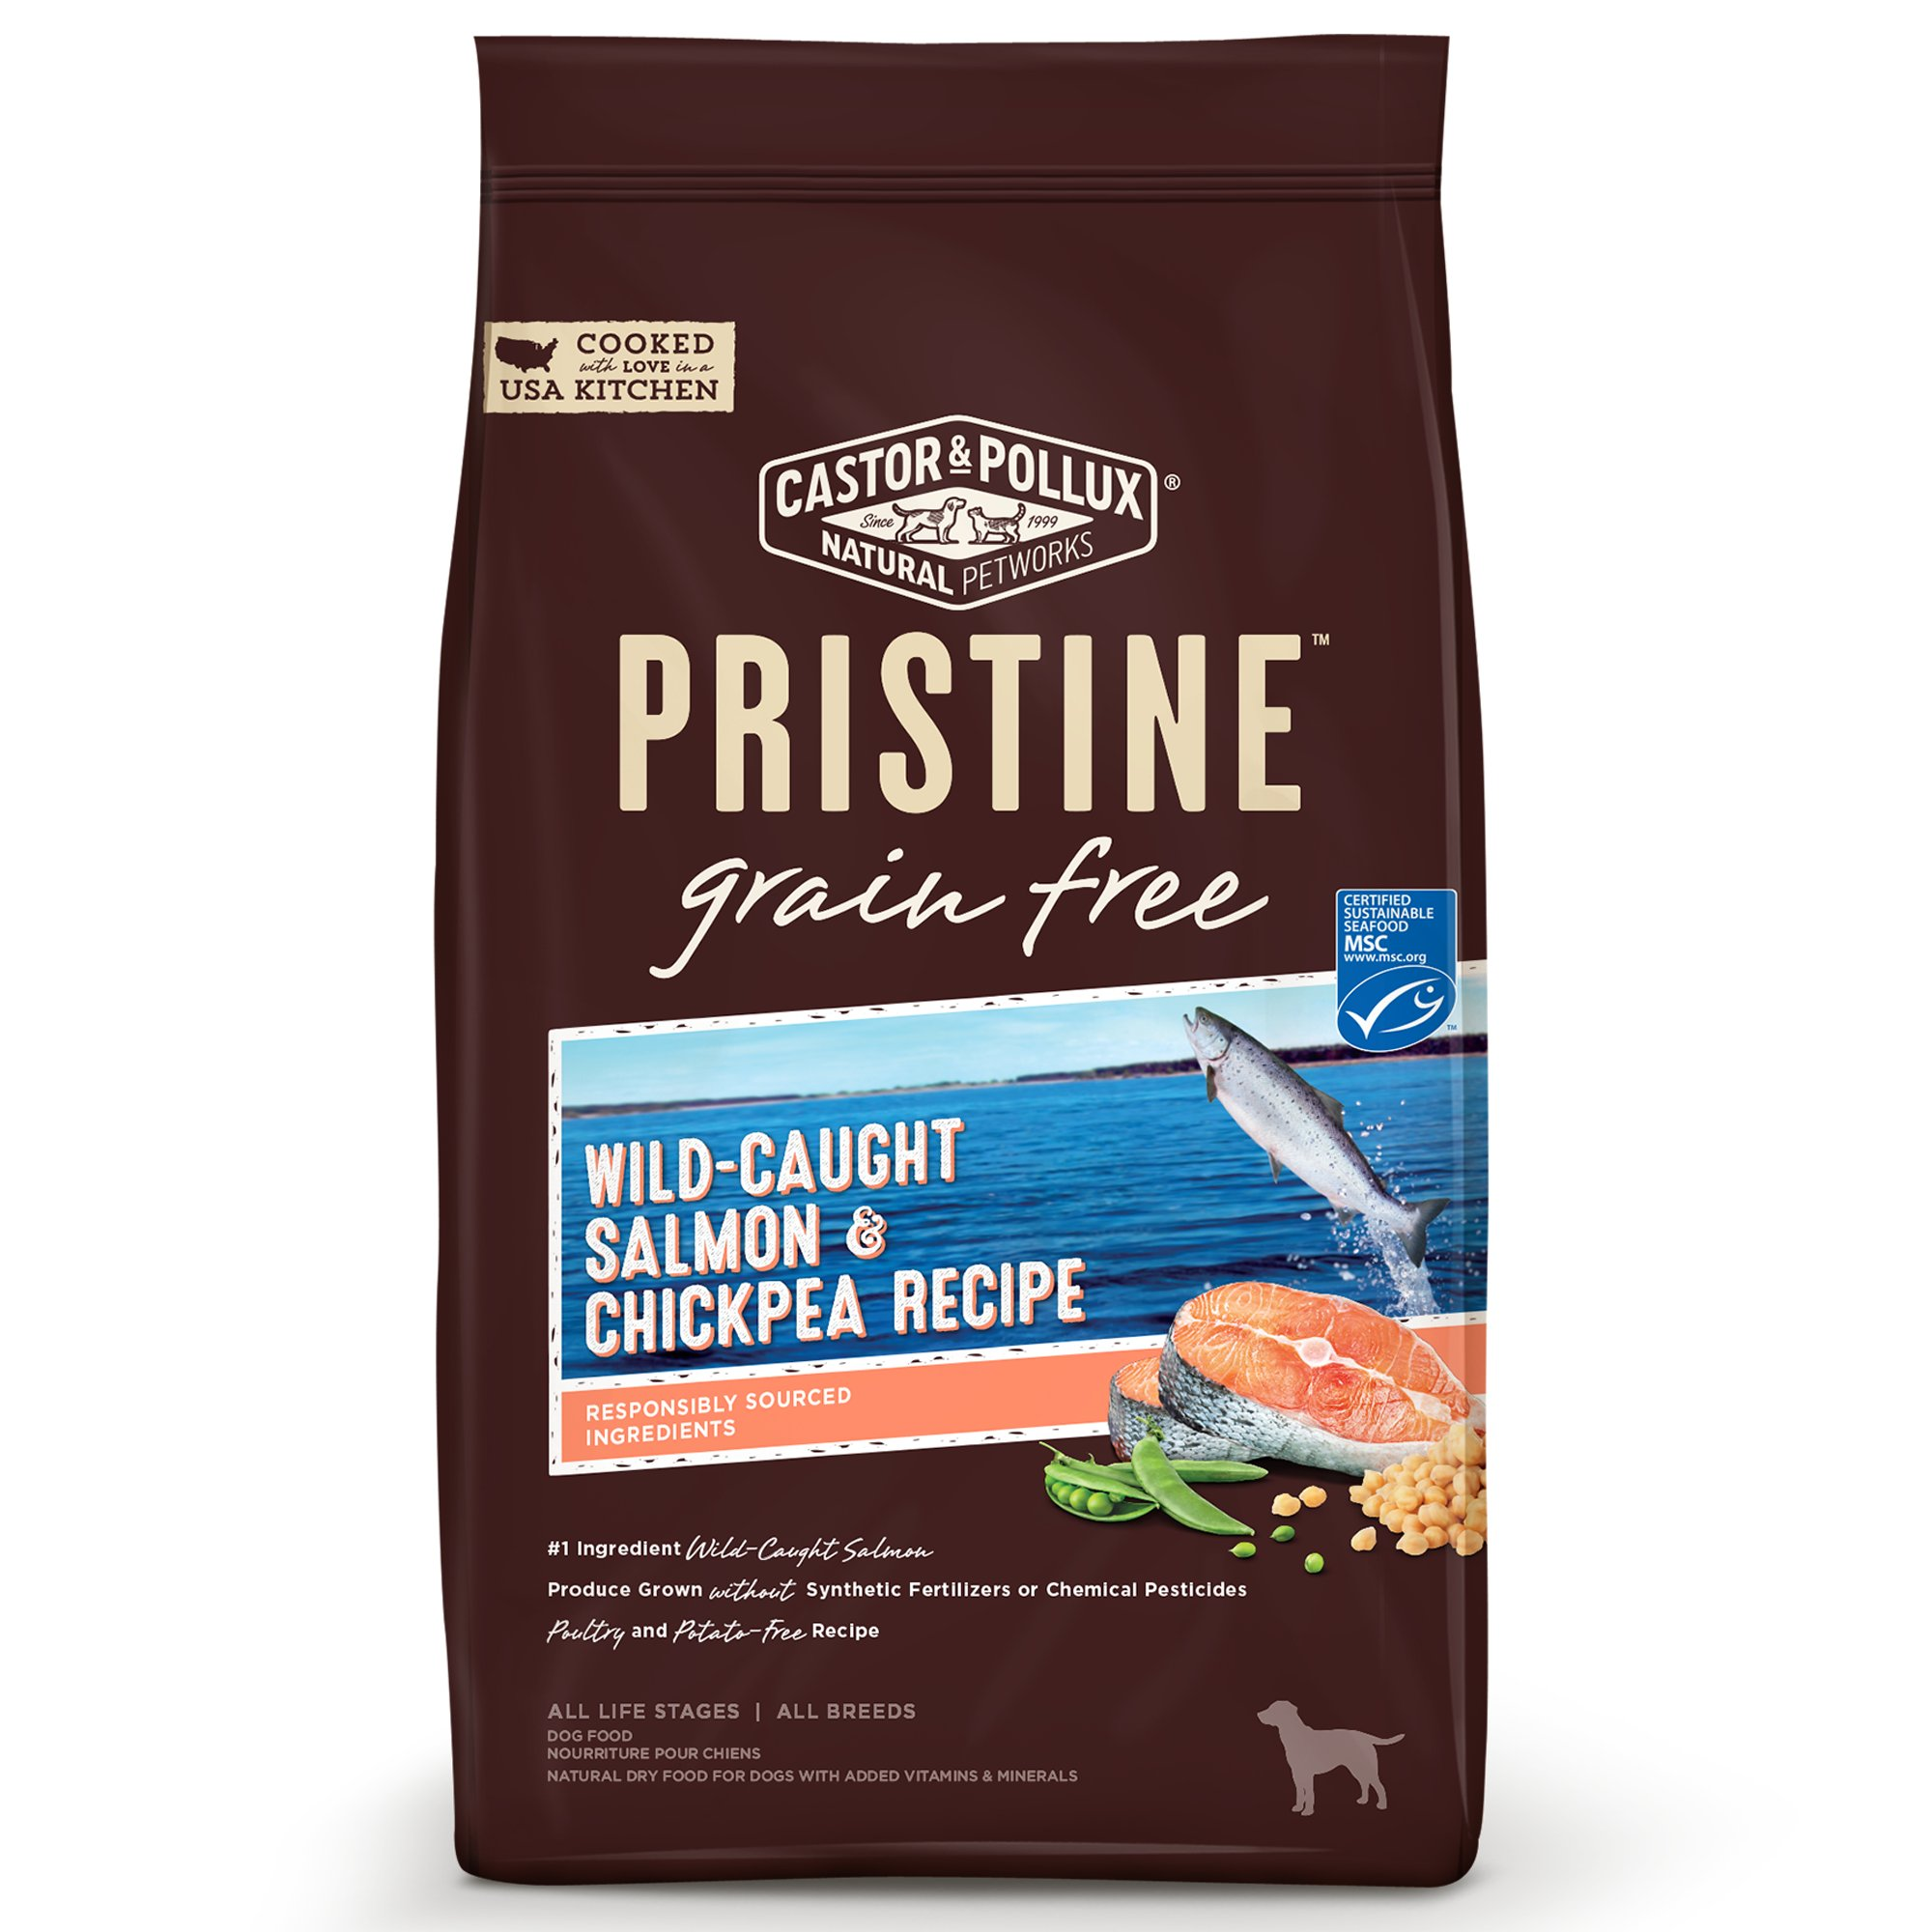 Castor & Pollux Pristine Grain Free Wild-Caught Salmon and Chickpea Recipe Dry Dog Food, 18 lbs.